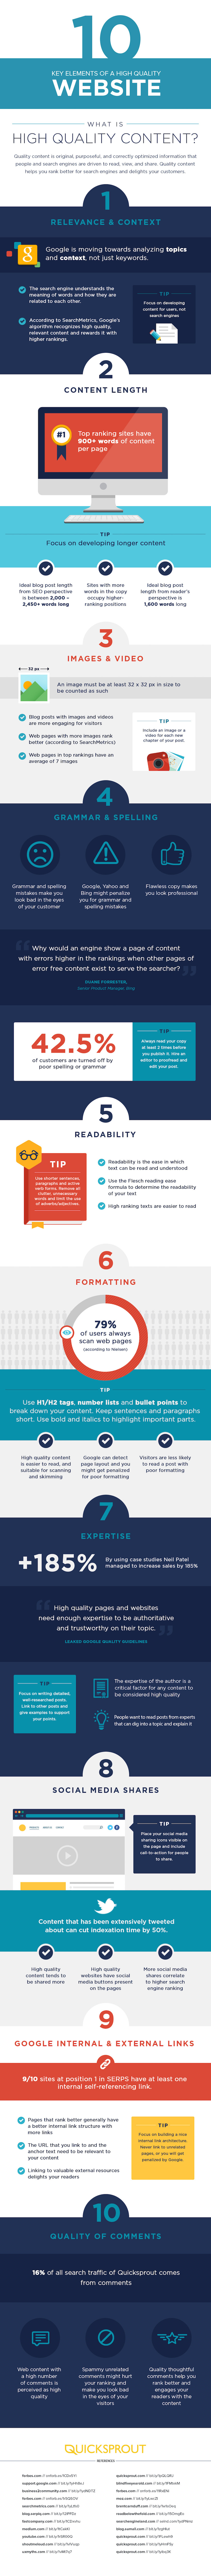 10 key website elements infographic